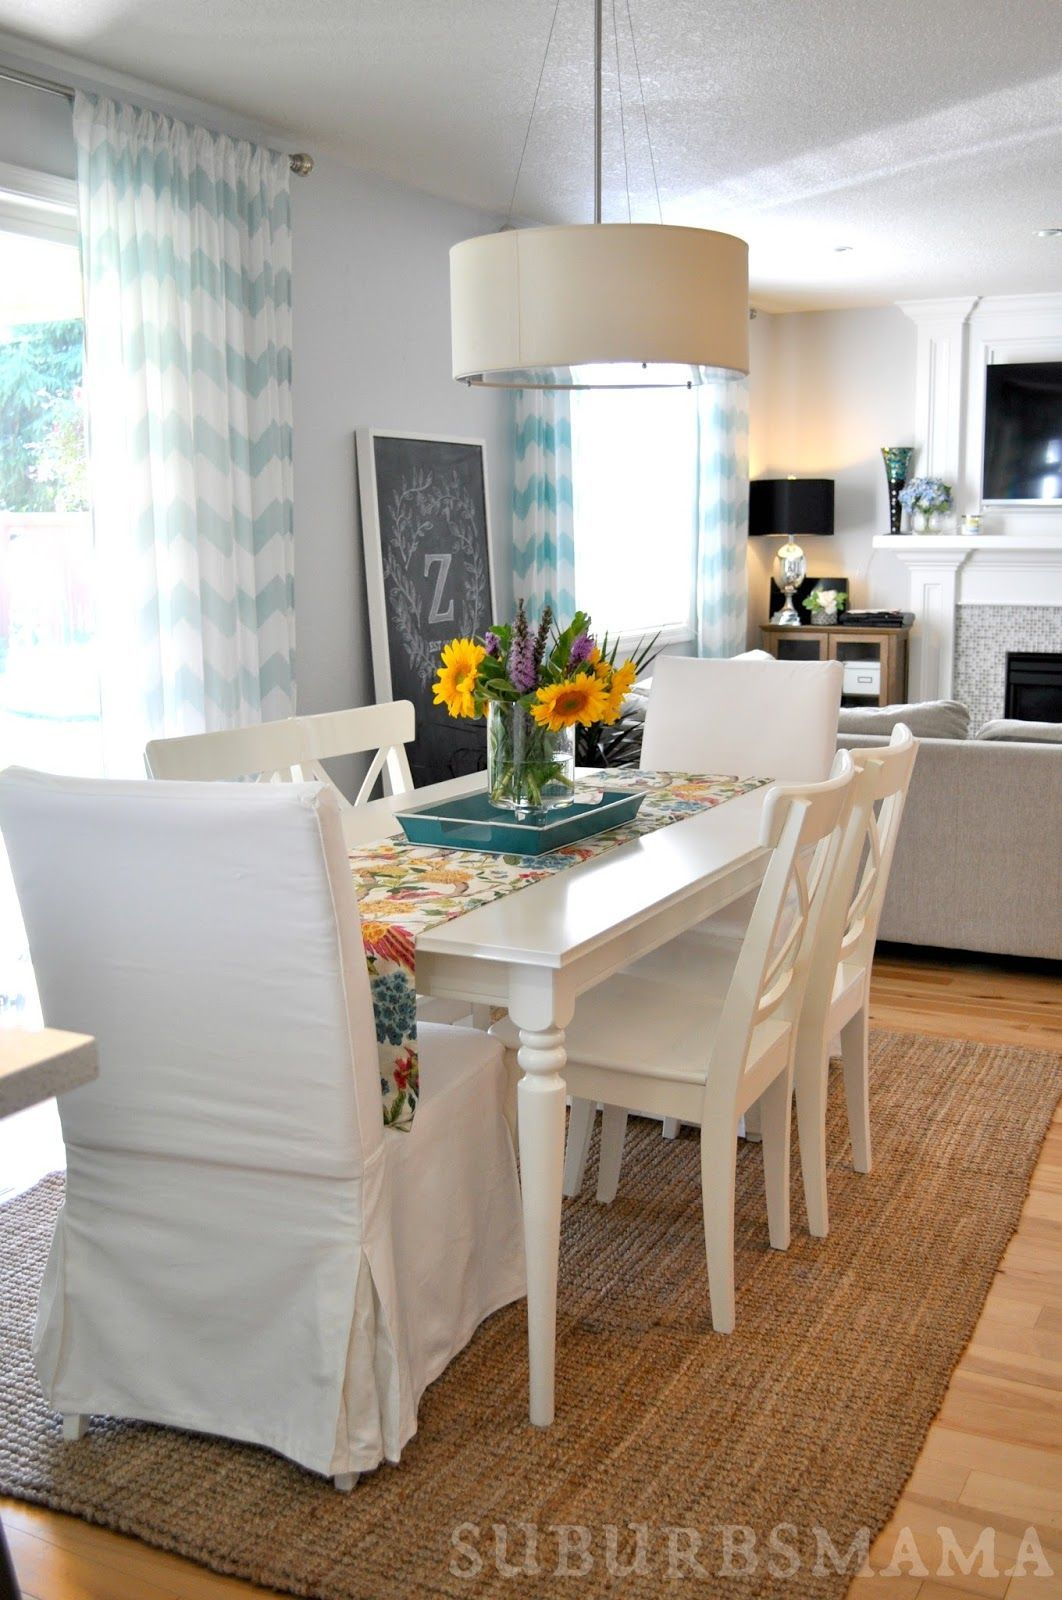 Next You Ll Enjoy 15 Some Of The Coolest Ideas How To Make Living Room Sets Ikea That Will Give Your Ikea Dining Table Ikea Dining Room Dining Room Table Set